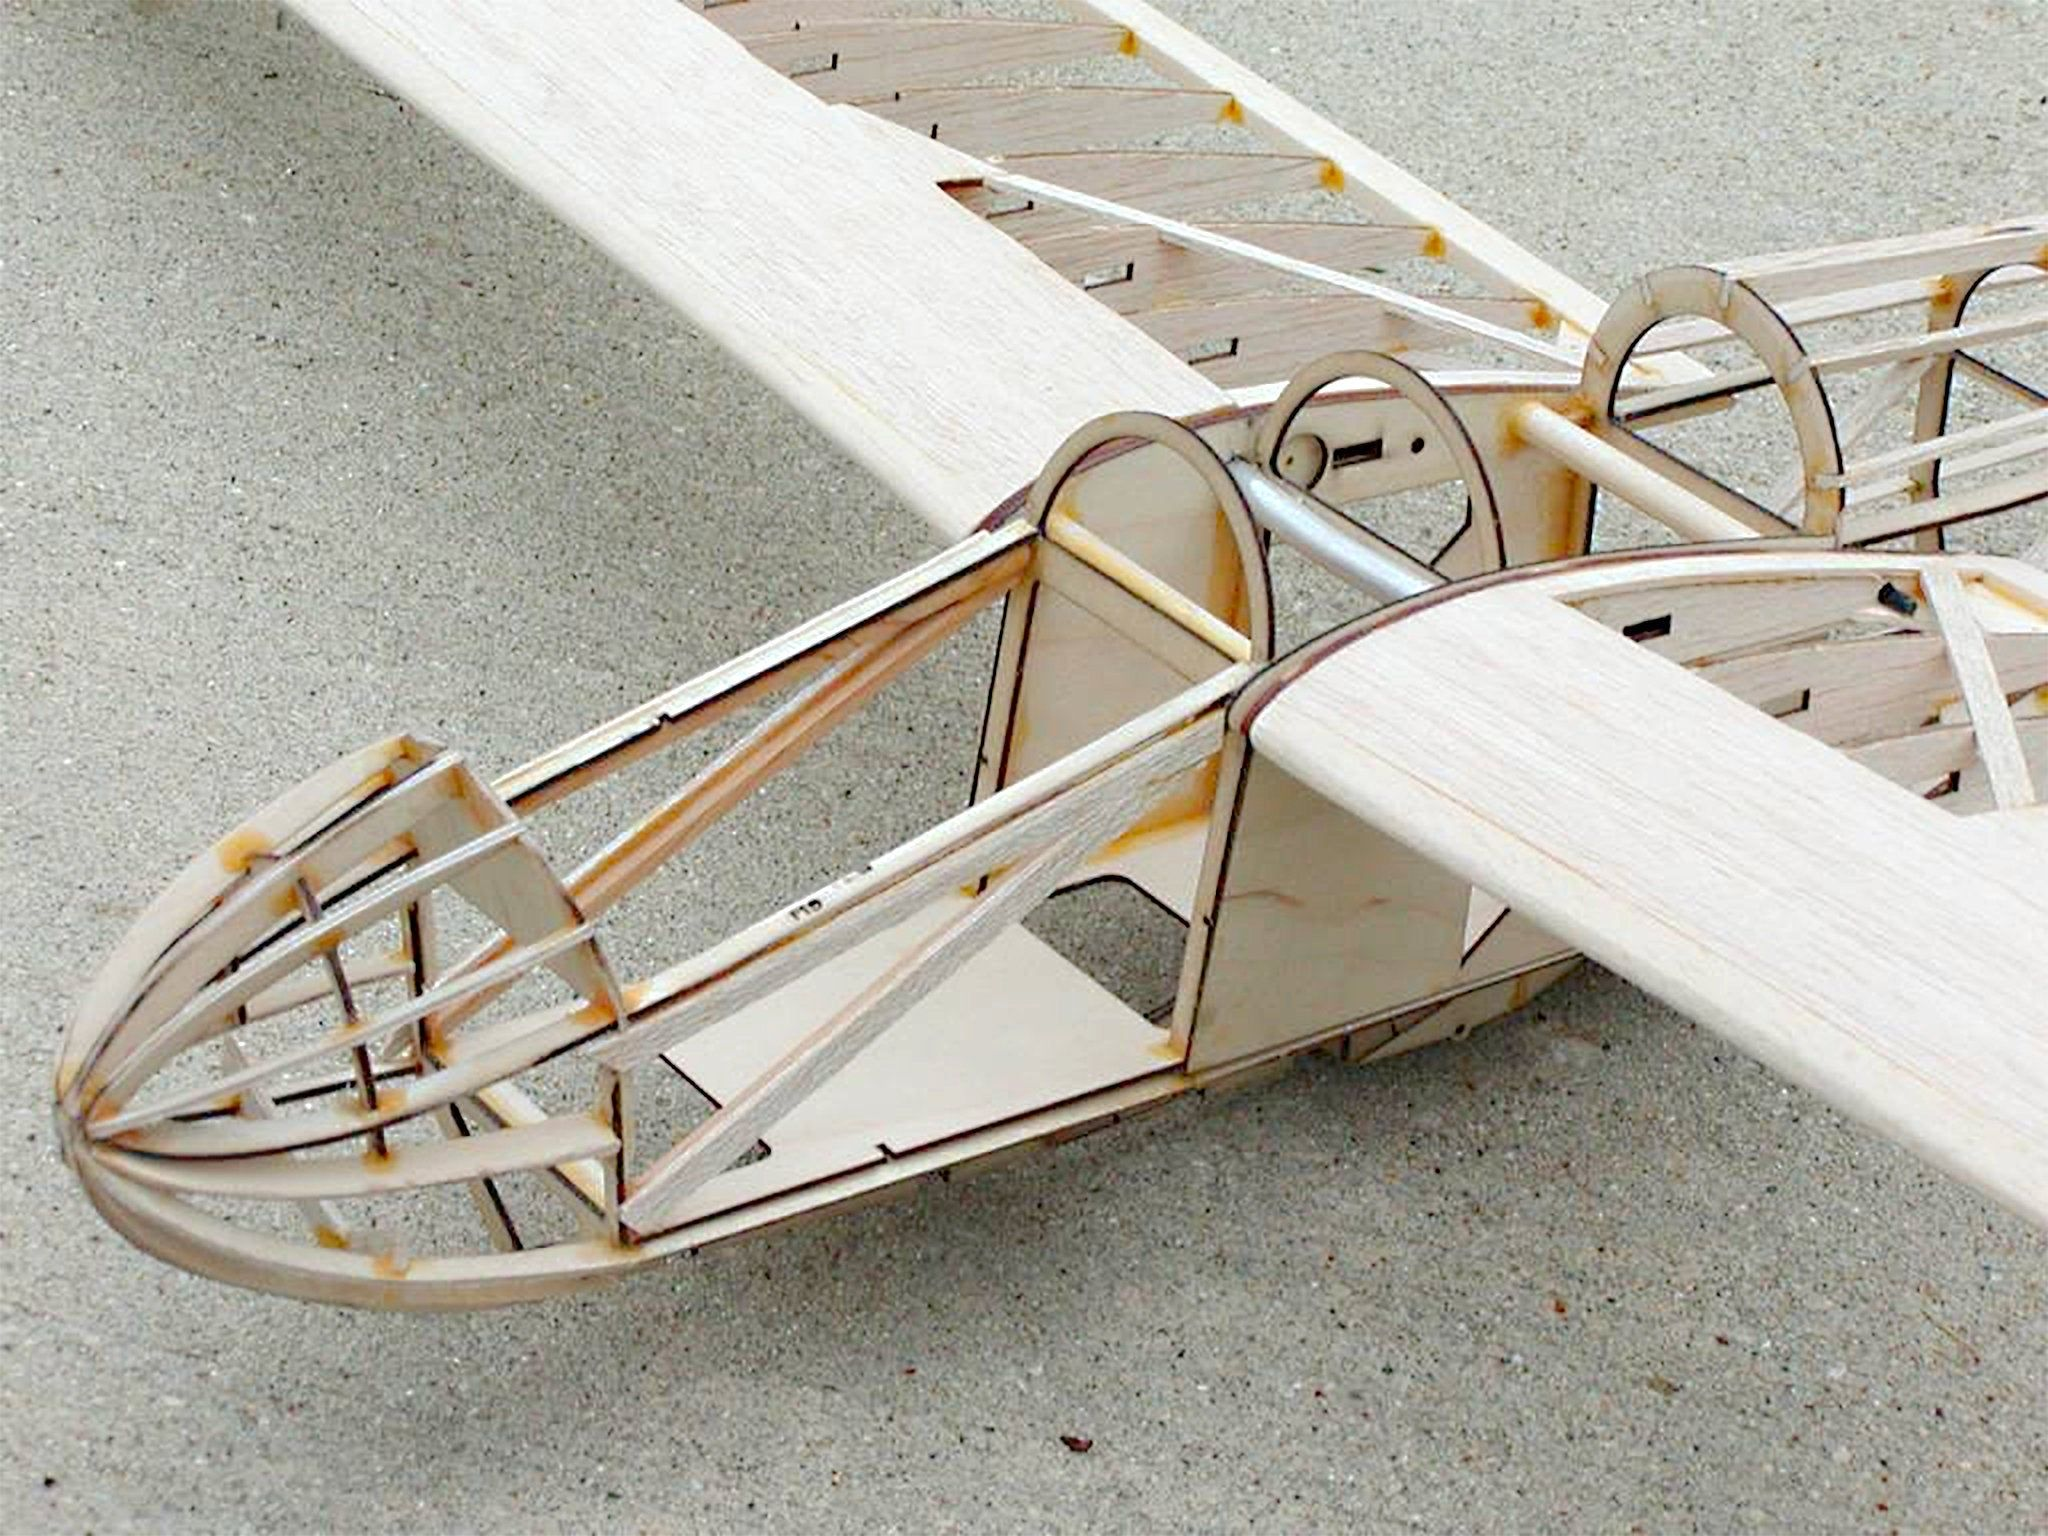 Schweizer 62 4 1 6m Tg 2 Lns 1 Schweizer Sgs 2 8 Etsy How To Plan Wood Boat Plans Model Planes